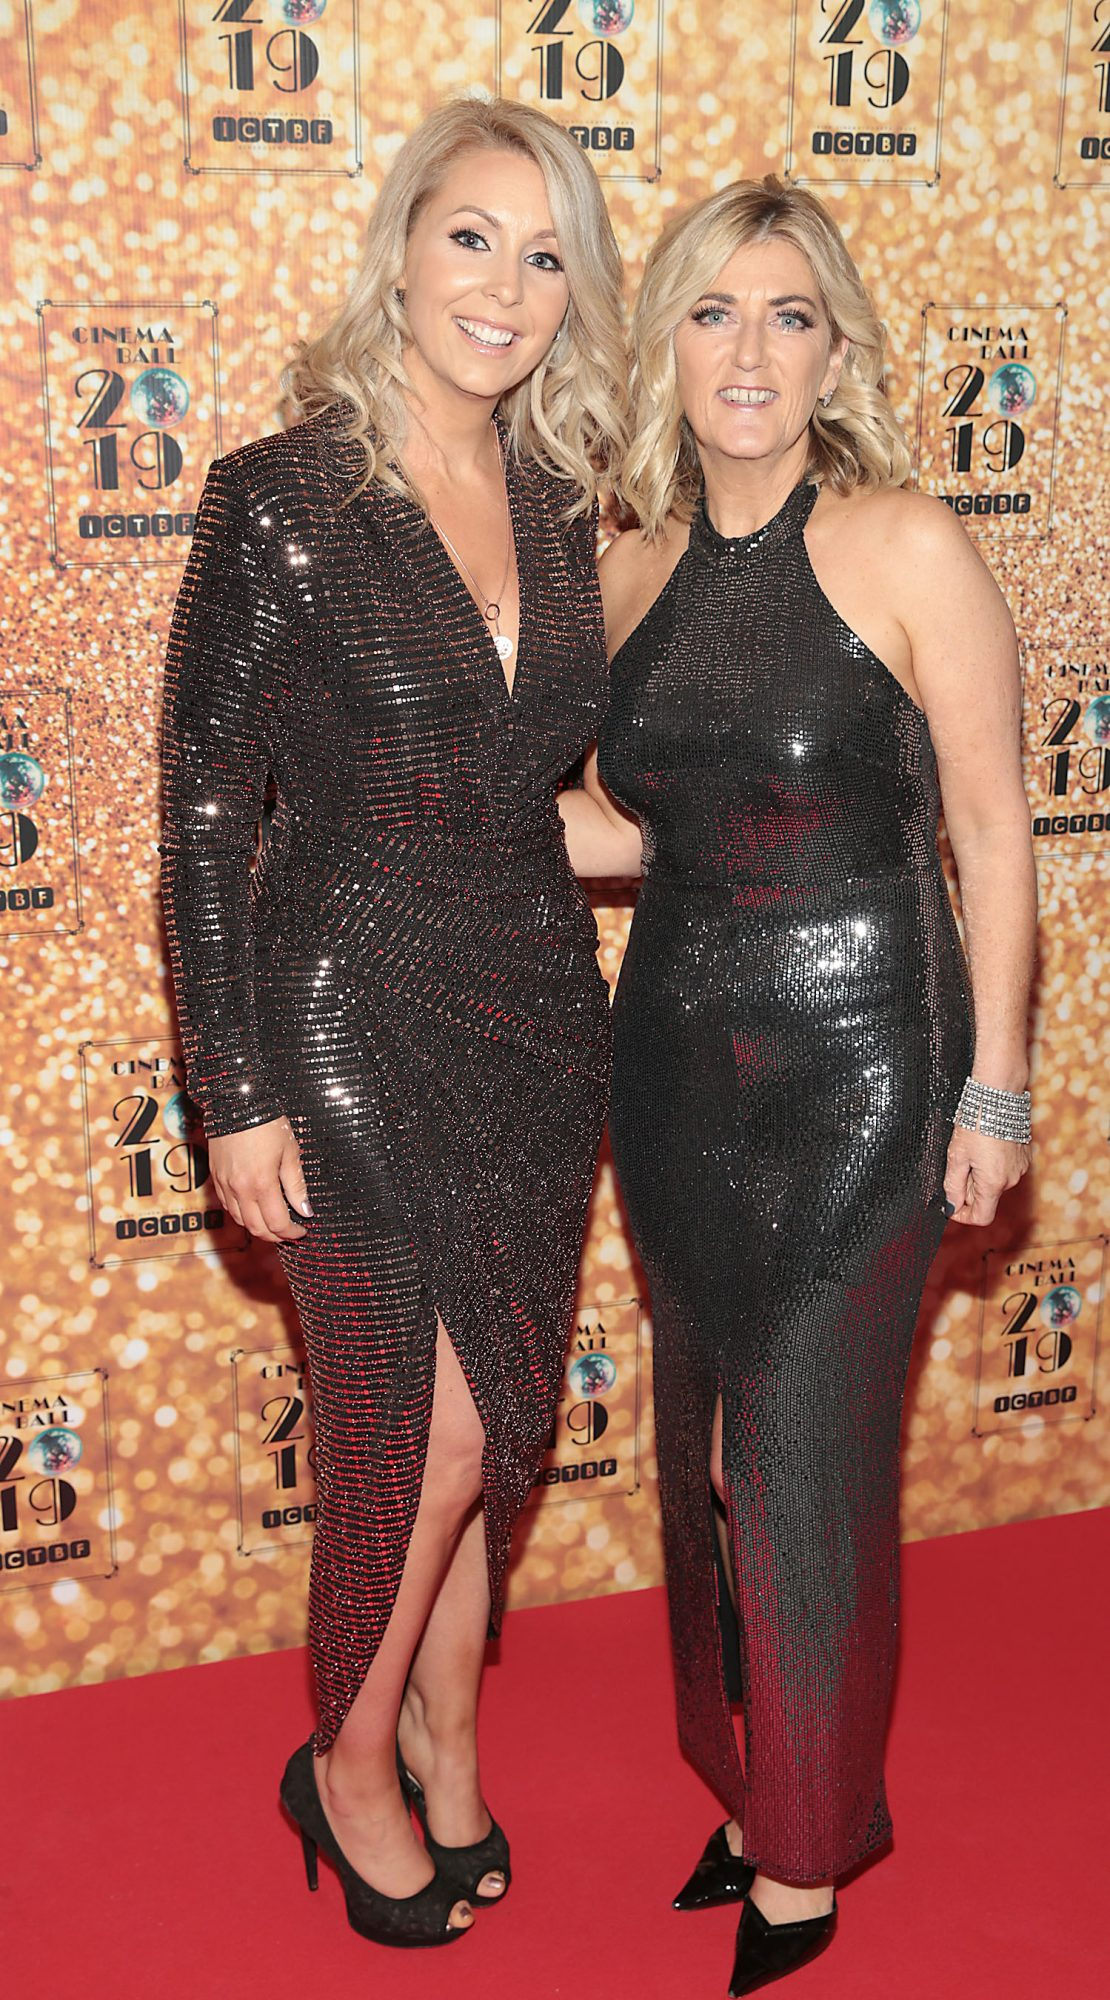 Jenna Eccles and Fiona Colley pictured at the Irish Cinema Ball 2019 in aid of the Irish Cinematograph Trade Benevolent Fund (ICTBF ) at The Shelbourne Hotel, Dublin This year's theme was the iconic 'Studio 54'. Pic: Brian McEvoy.